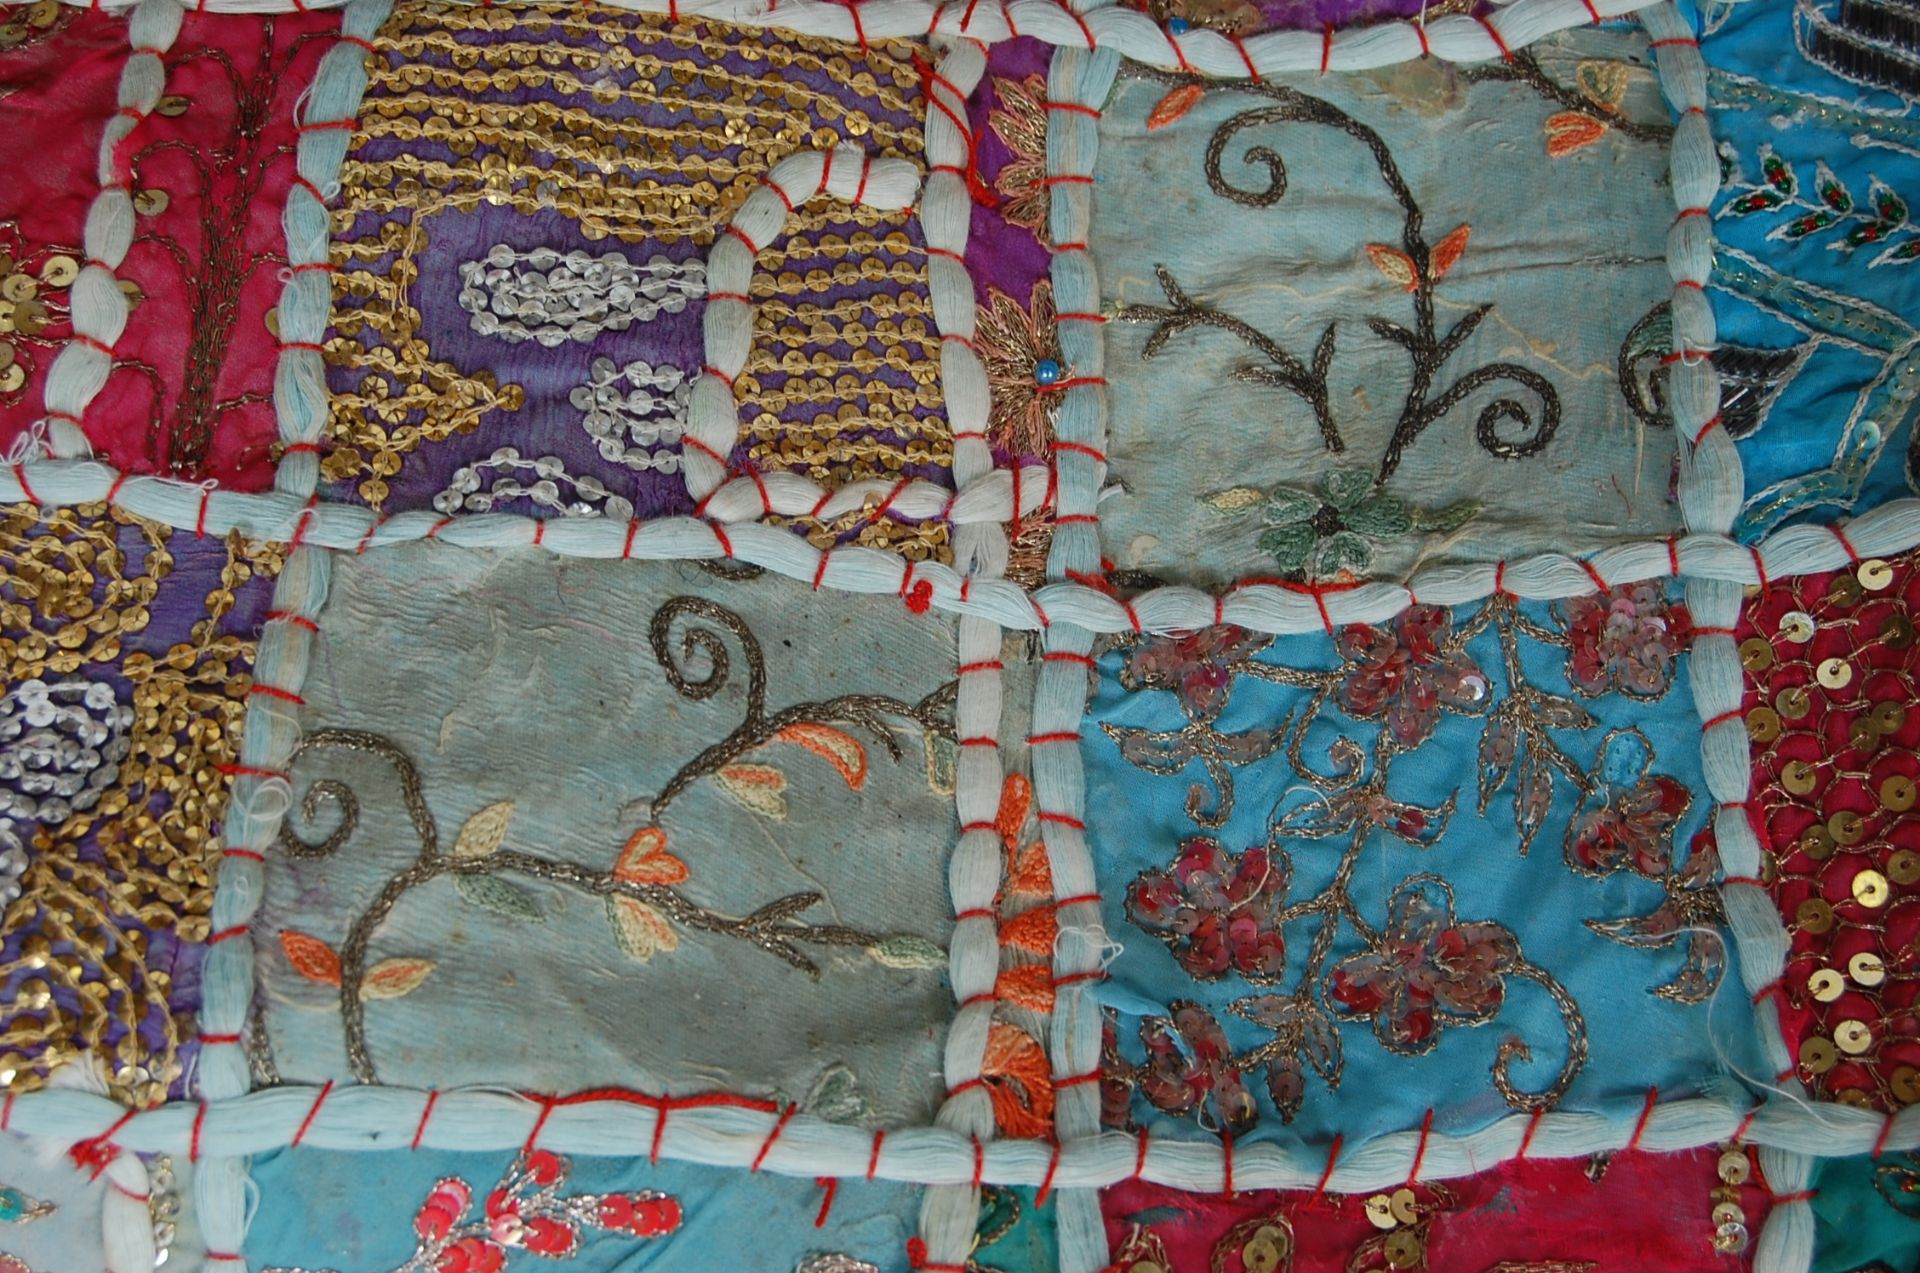 20TH CENTURY ANTIQUE STYLE TRADITIONAL PAKISTANI / RAJASTHANI / INDIAN PATCHWORK QUILT BED THROW - Image 7 of 11